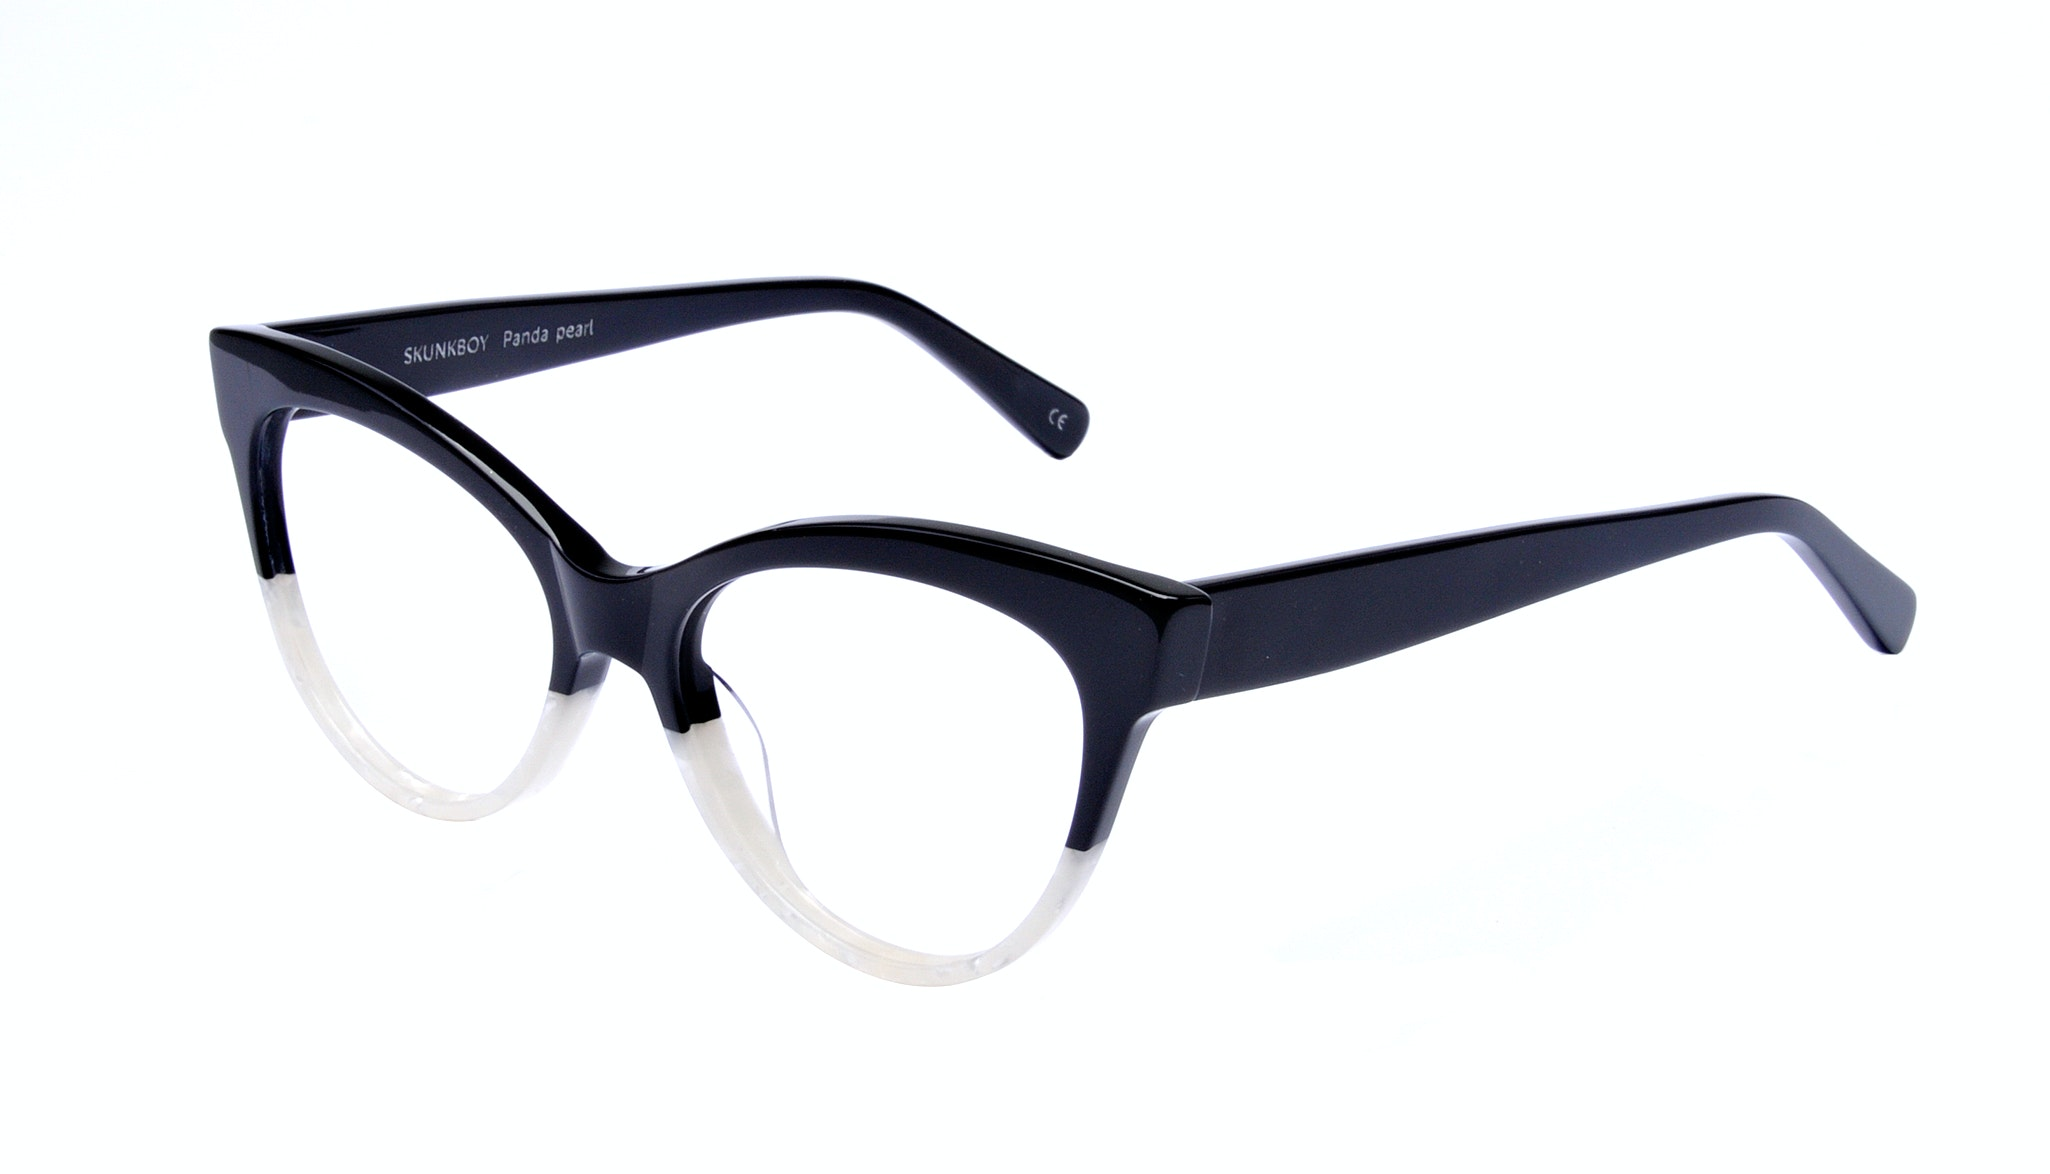 Affordable Fashion Glasses Cat Eye Daring Cateye Eyeglasses Women SkunkBoy Panda Pearl Tilt